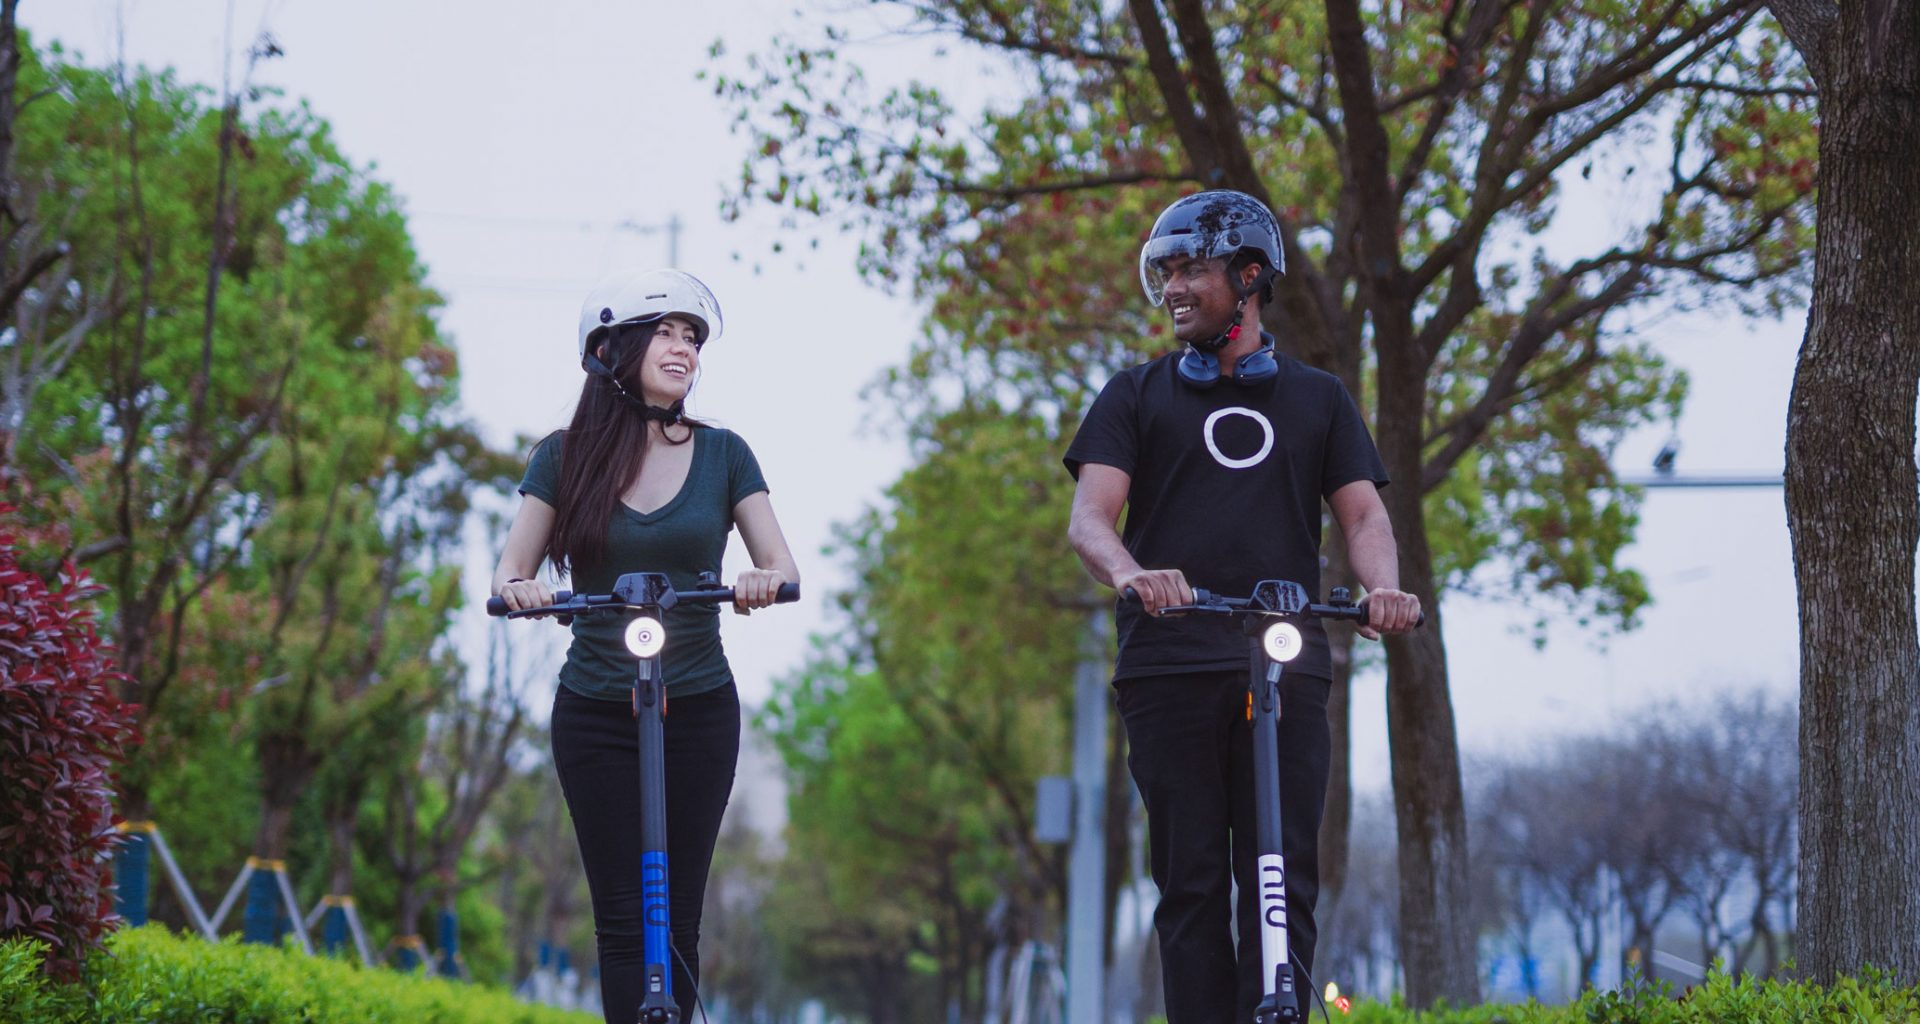 Two people enjoy riding their kick scooters through the park